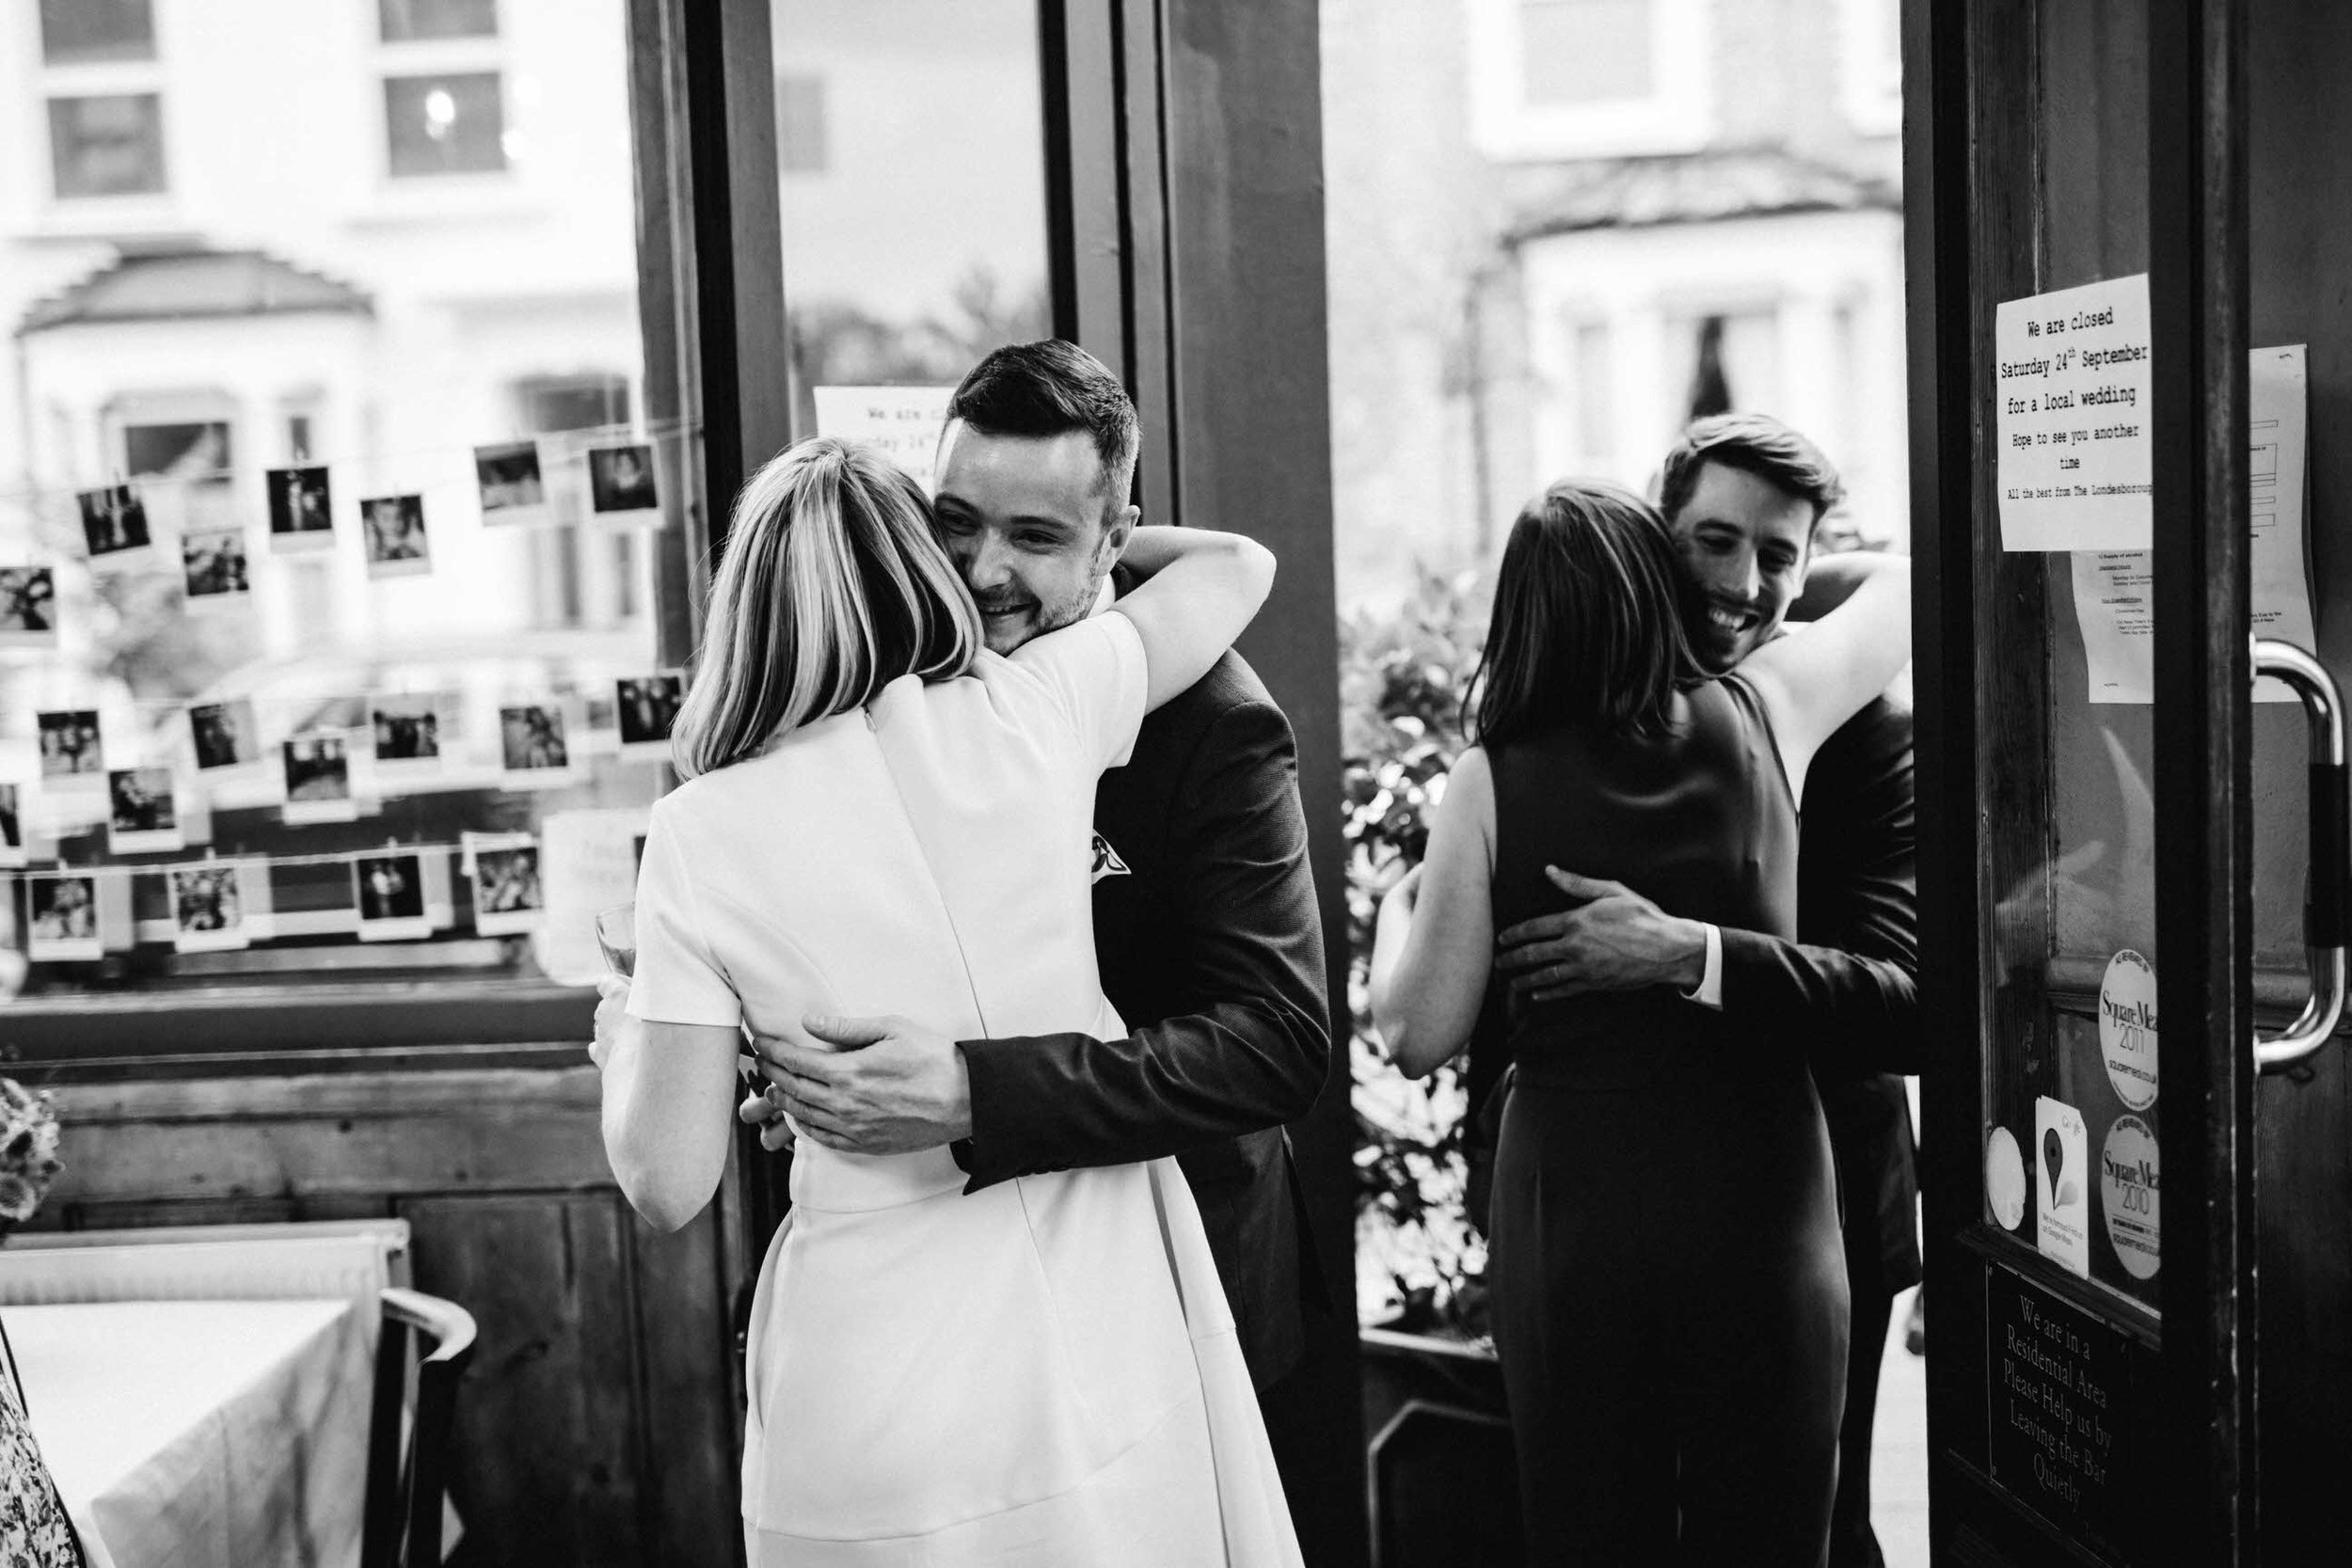 islington town hall wedding photographer-84.jpg